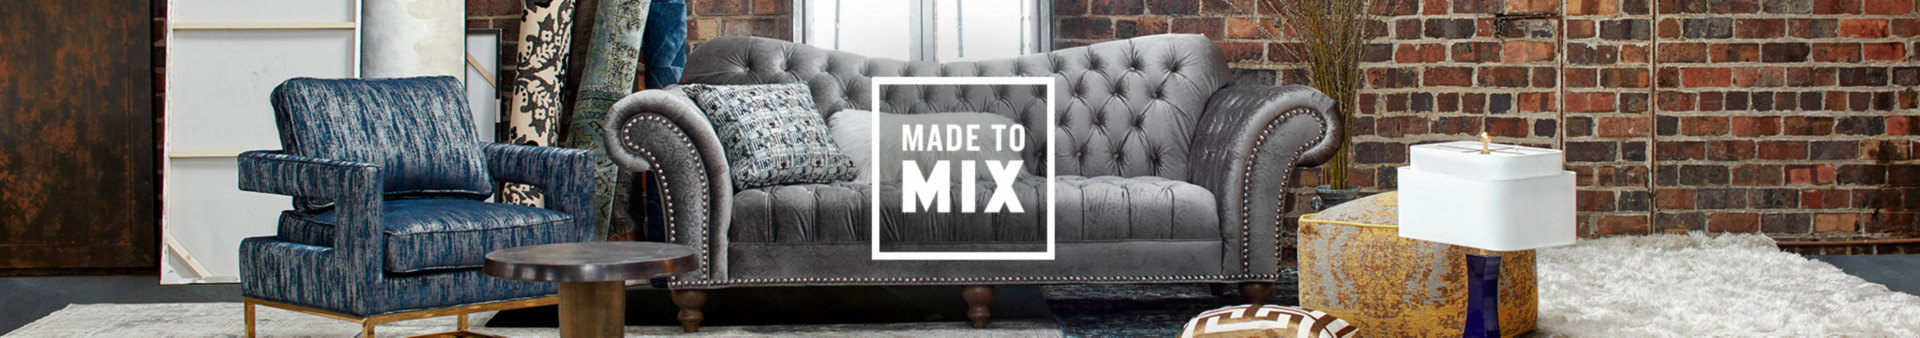 made to mix